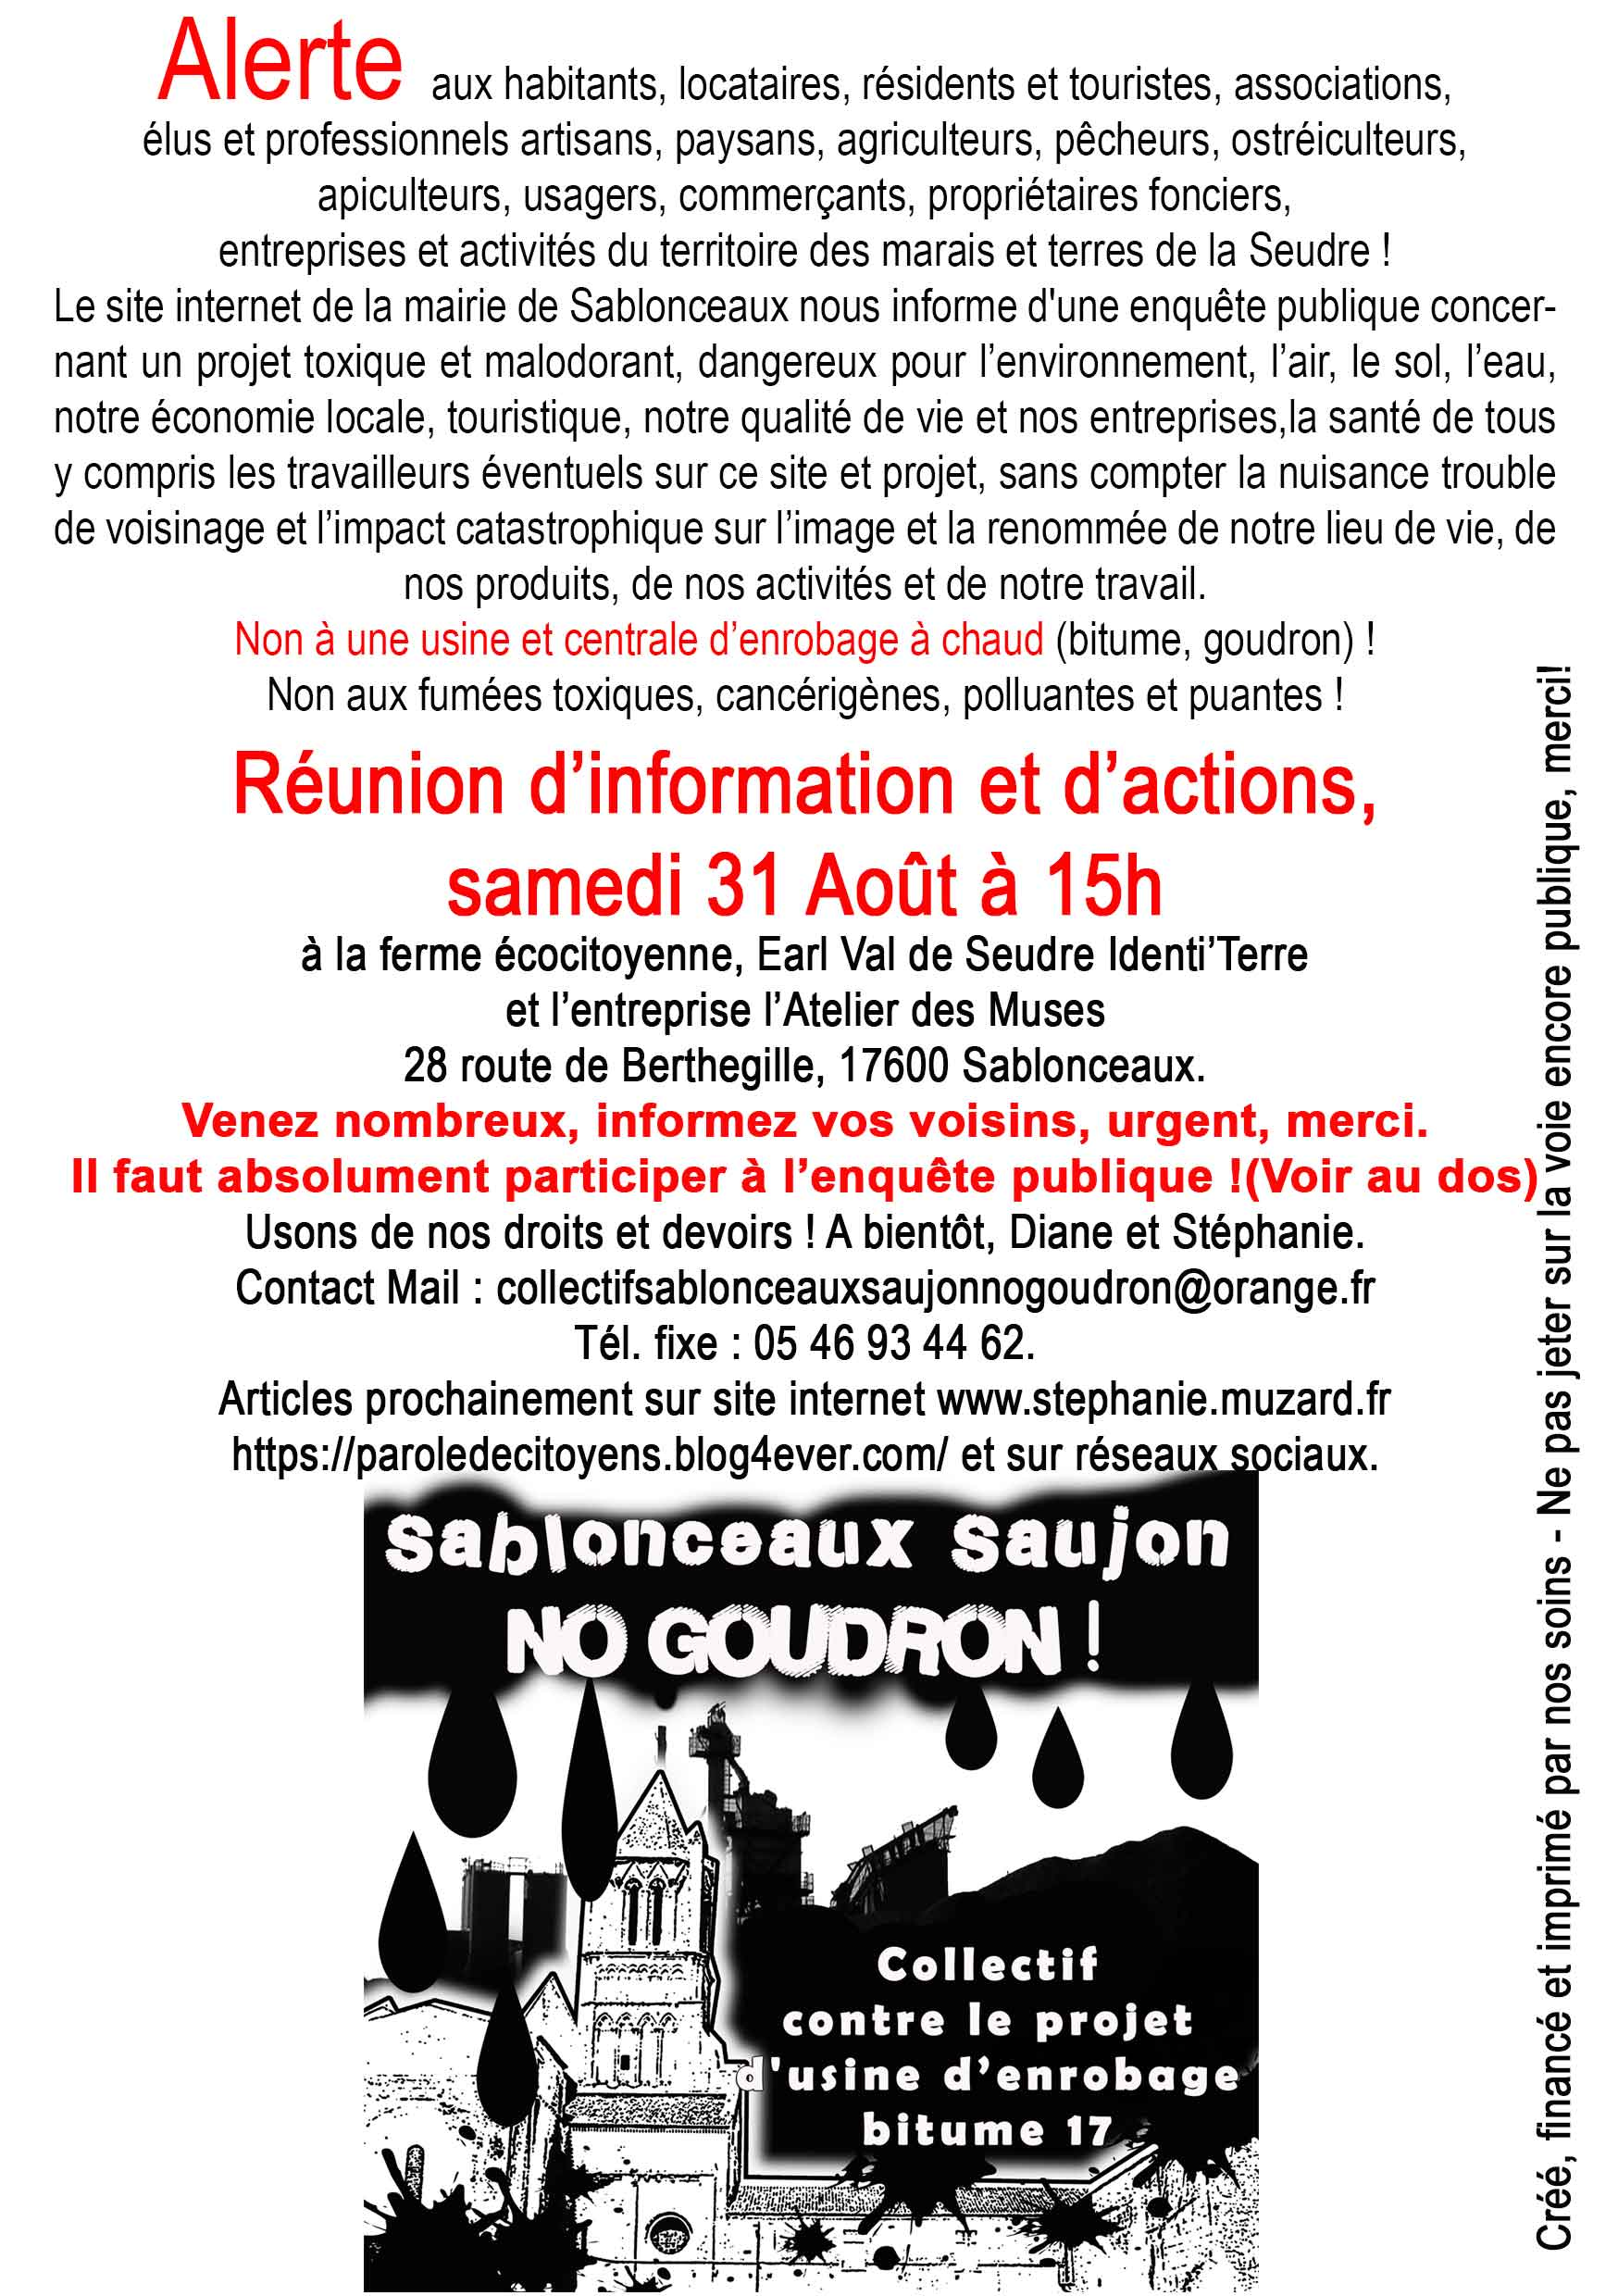 tract-du-28-aout-recto.jpg